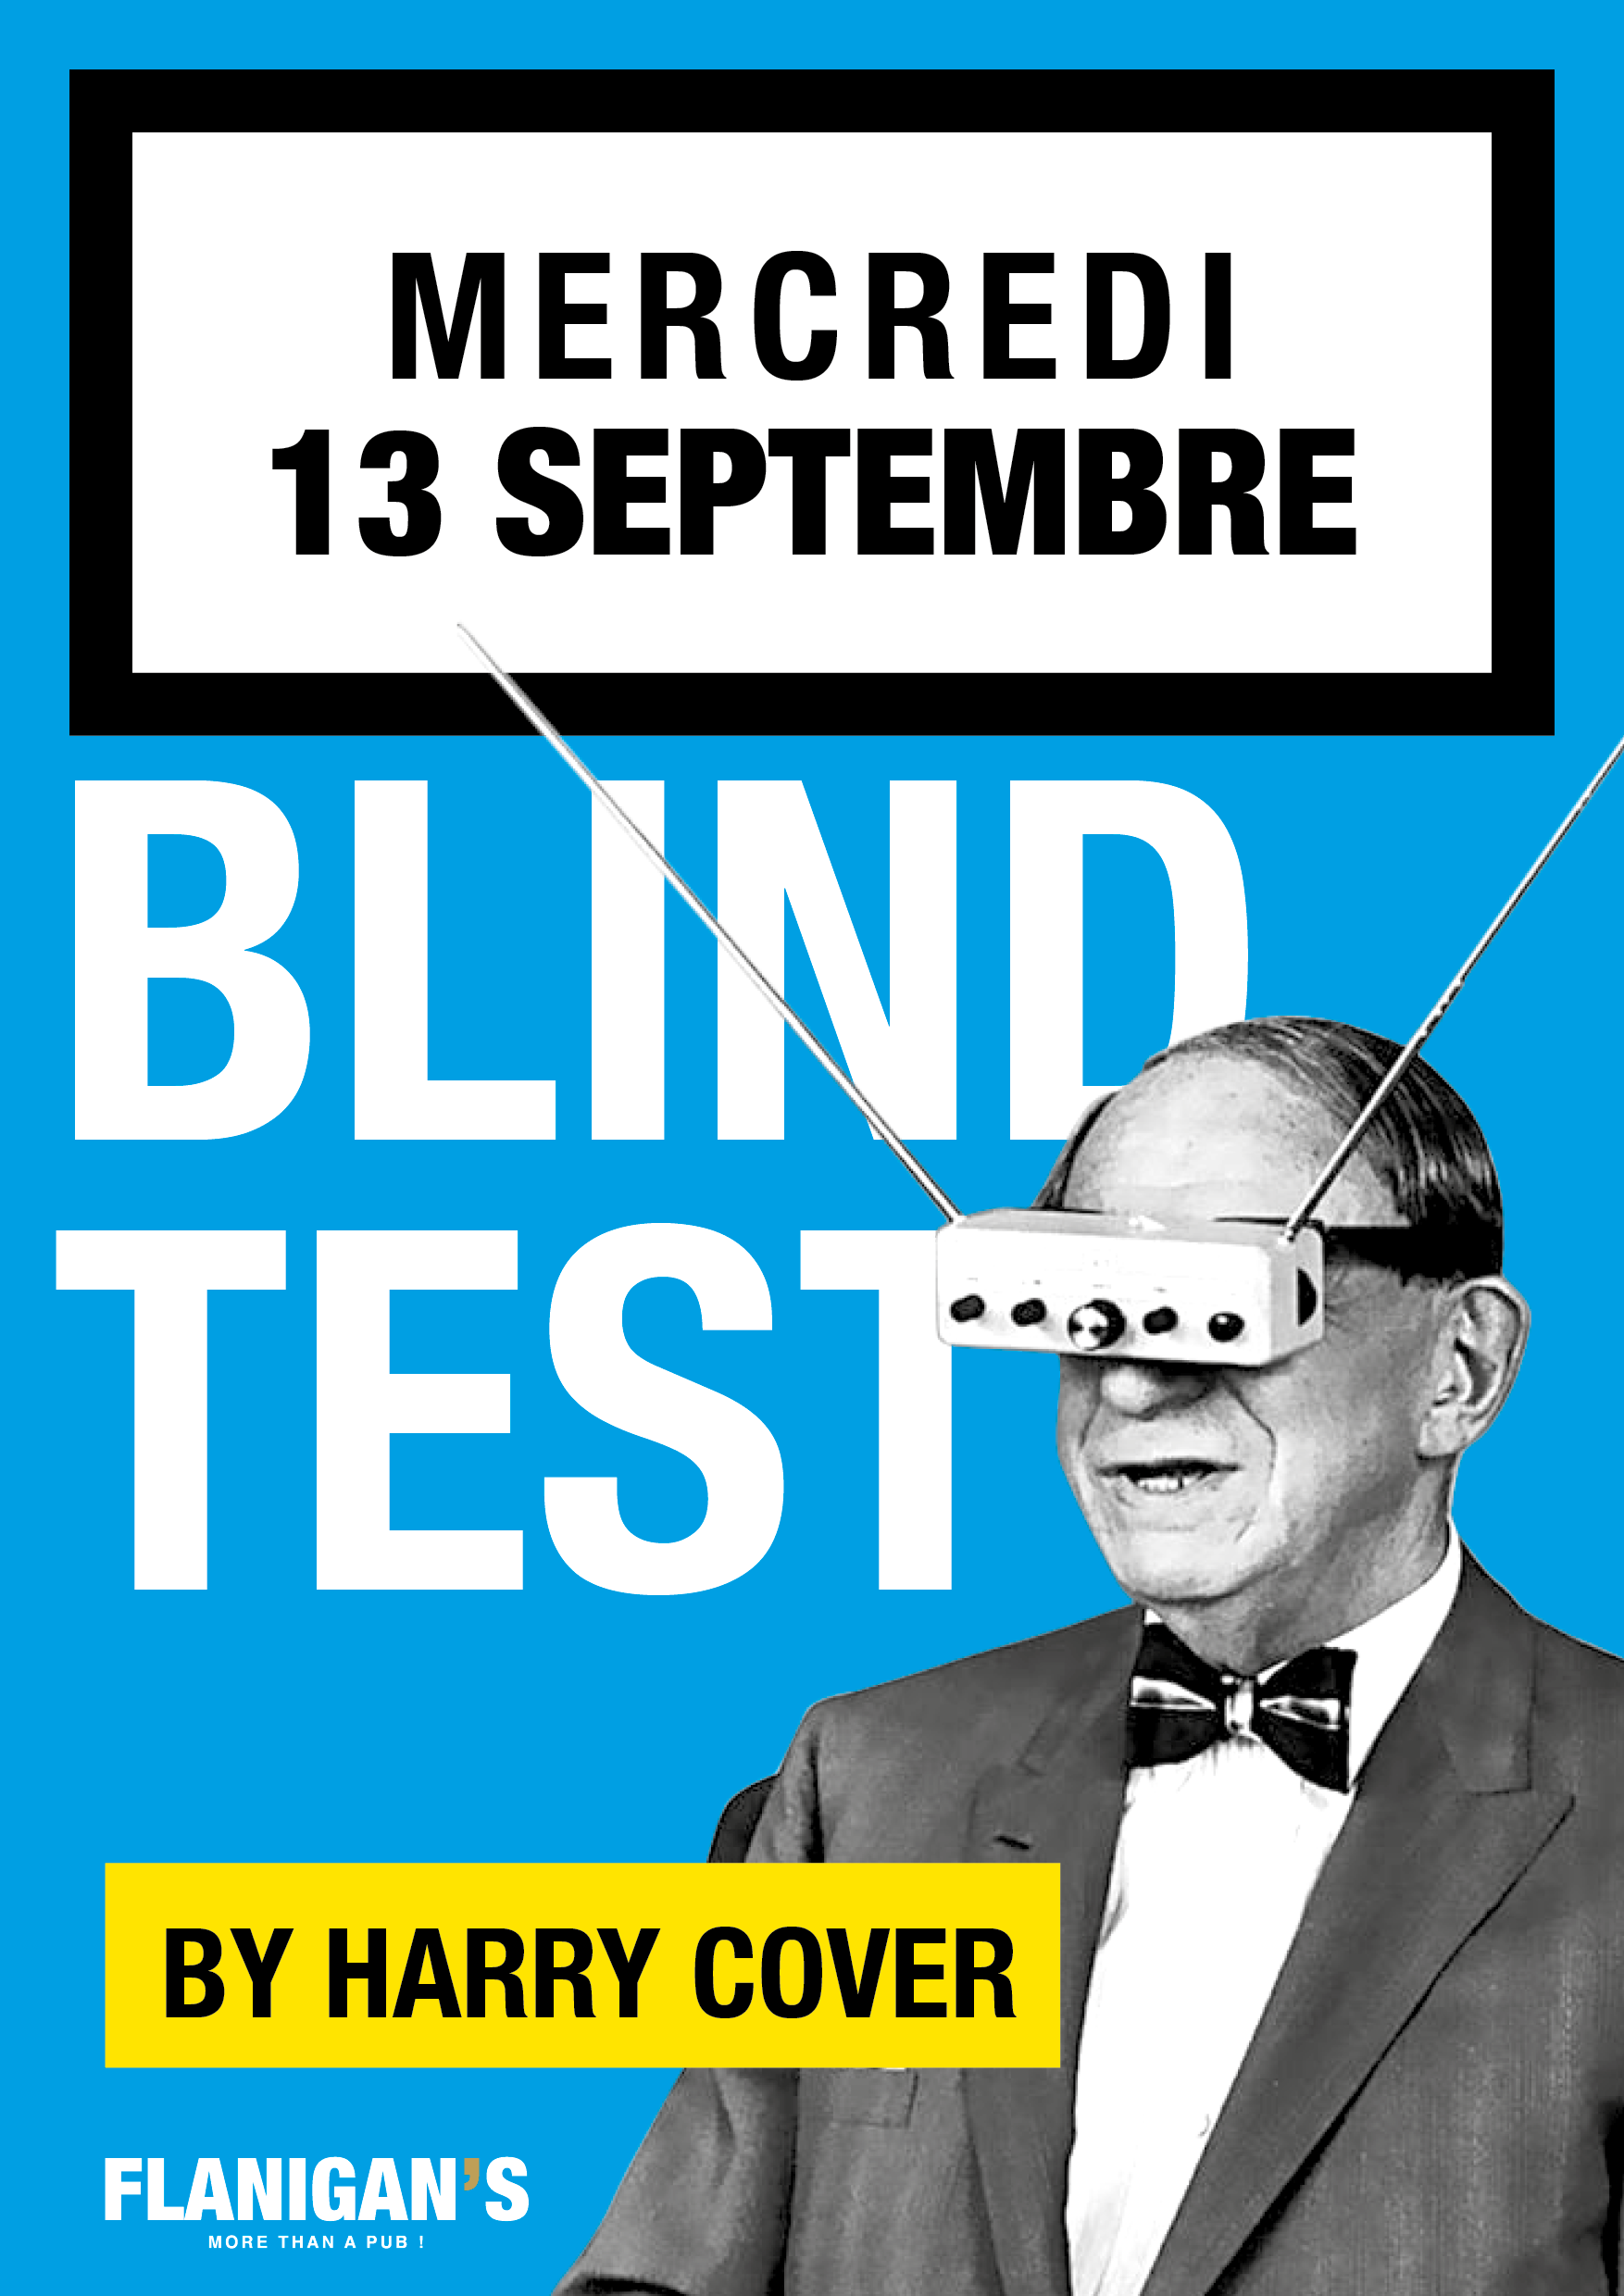 Blind Test by Harry Cover @ Flanigan's Pub !